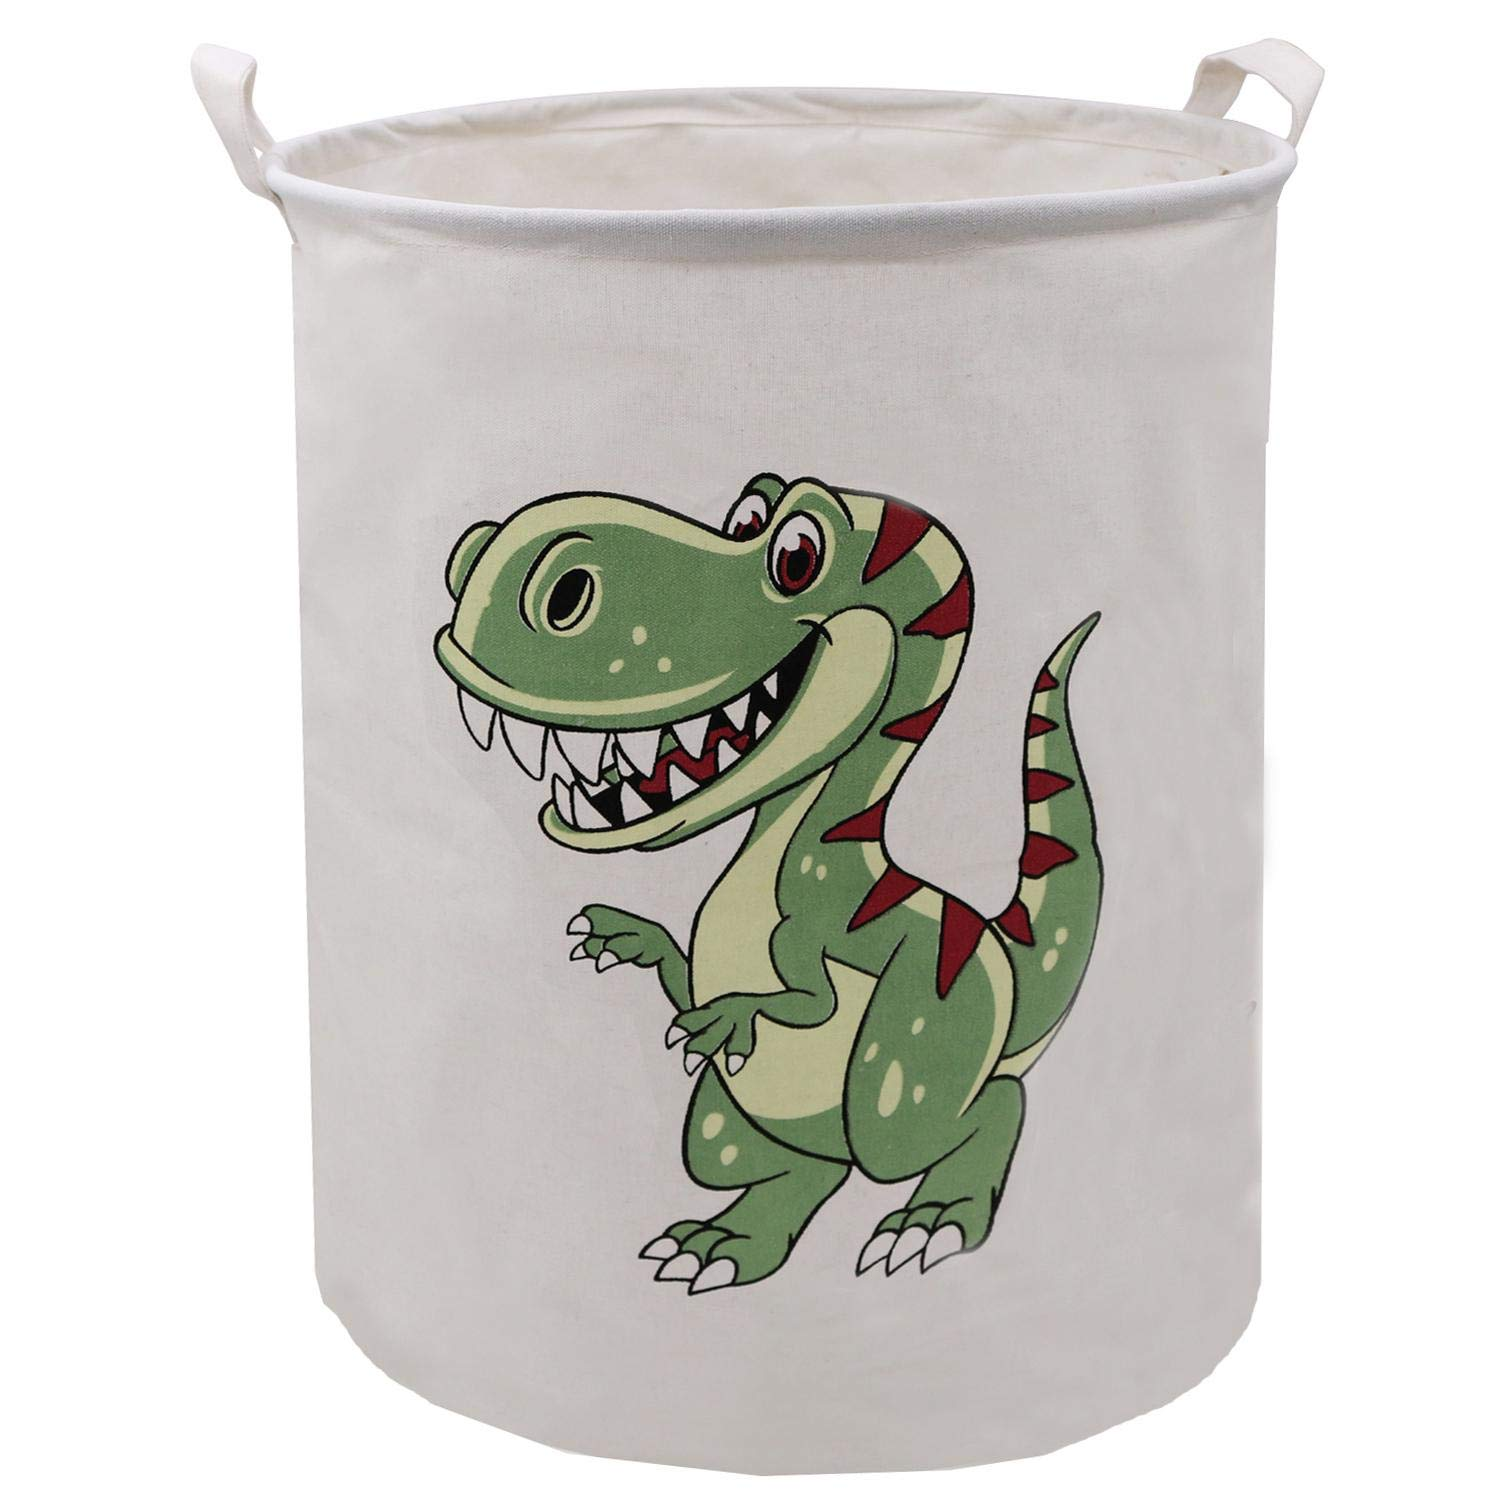 Green Dinosaur Laundry Hamper 19.7x15.7 Inch, ZUEXT Canvas Fabric Lightweight Storage Basket/Toy Bins/Collapsible Dirty Clothes Hamper, Waterproof Dino Gift Basket for Kids Bedroom Baby Nursery